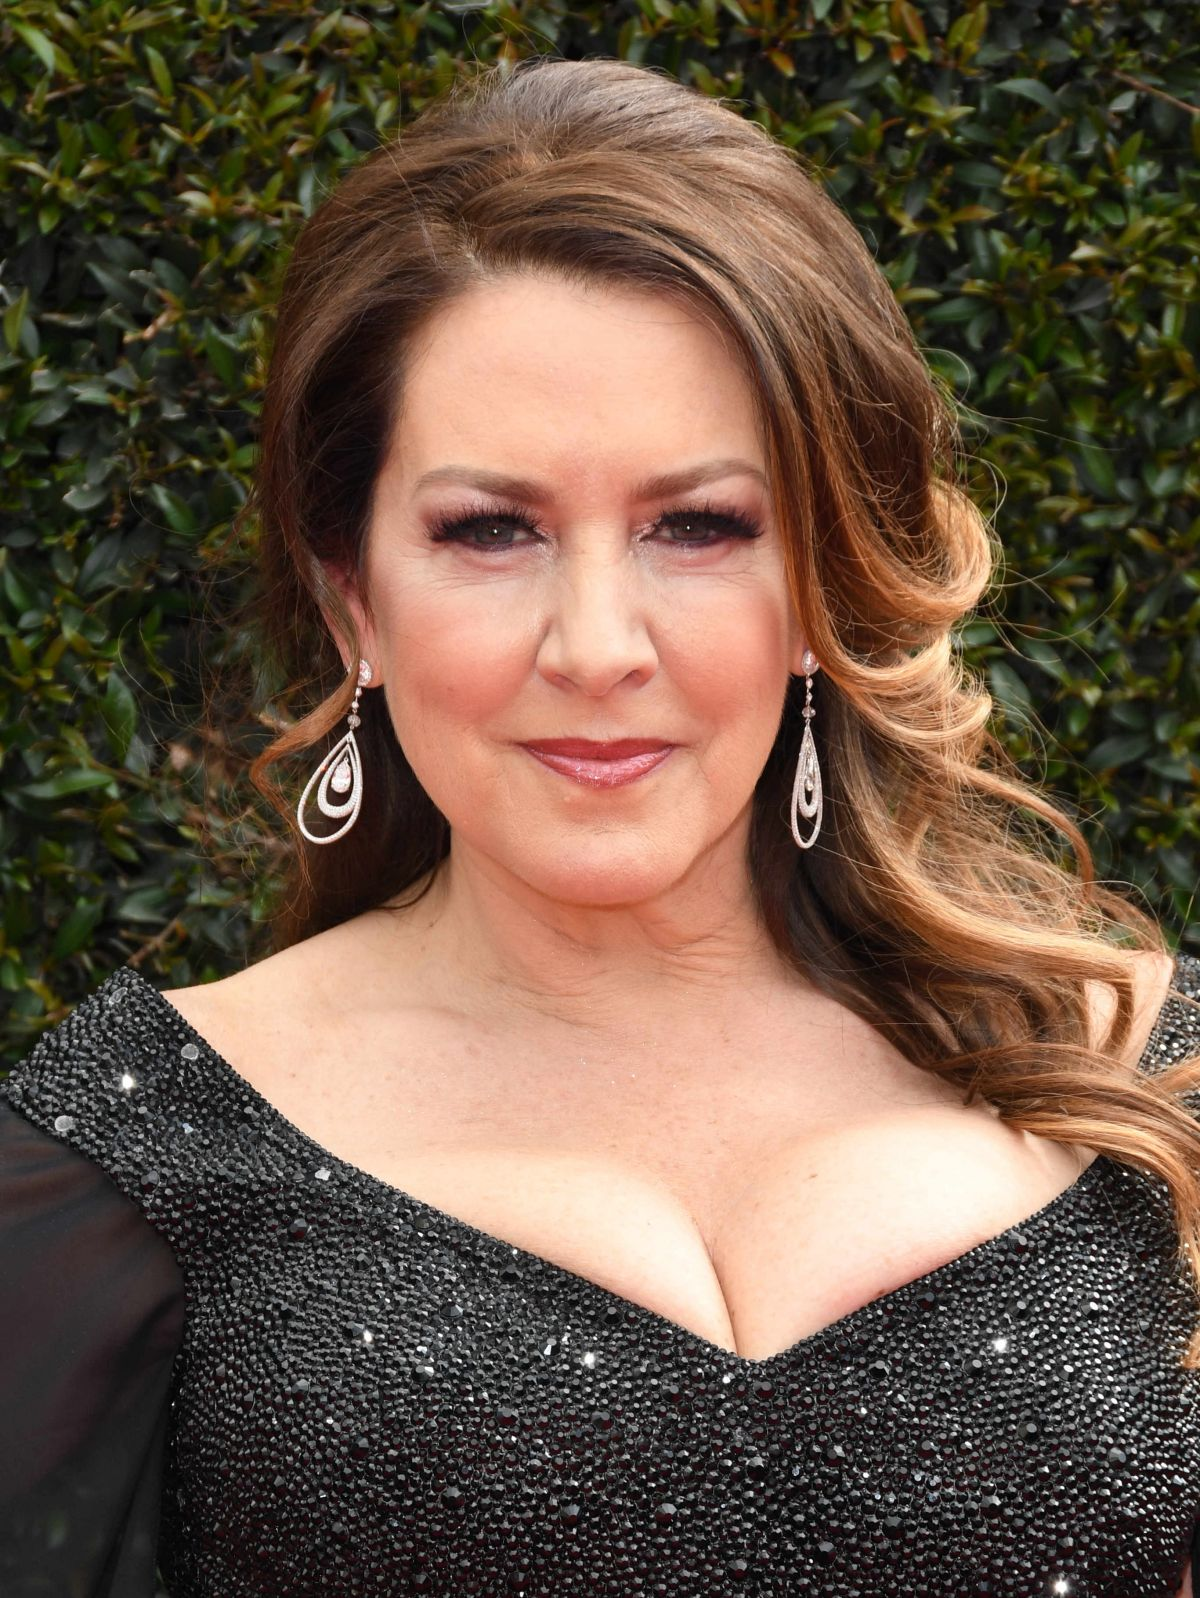 Joely fisher images